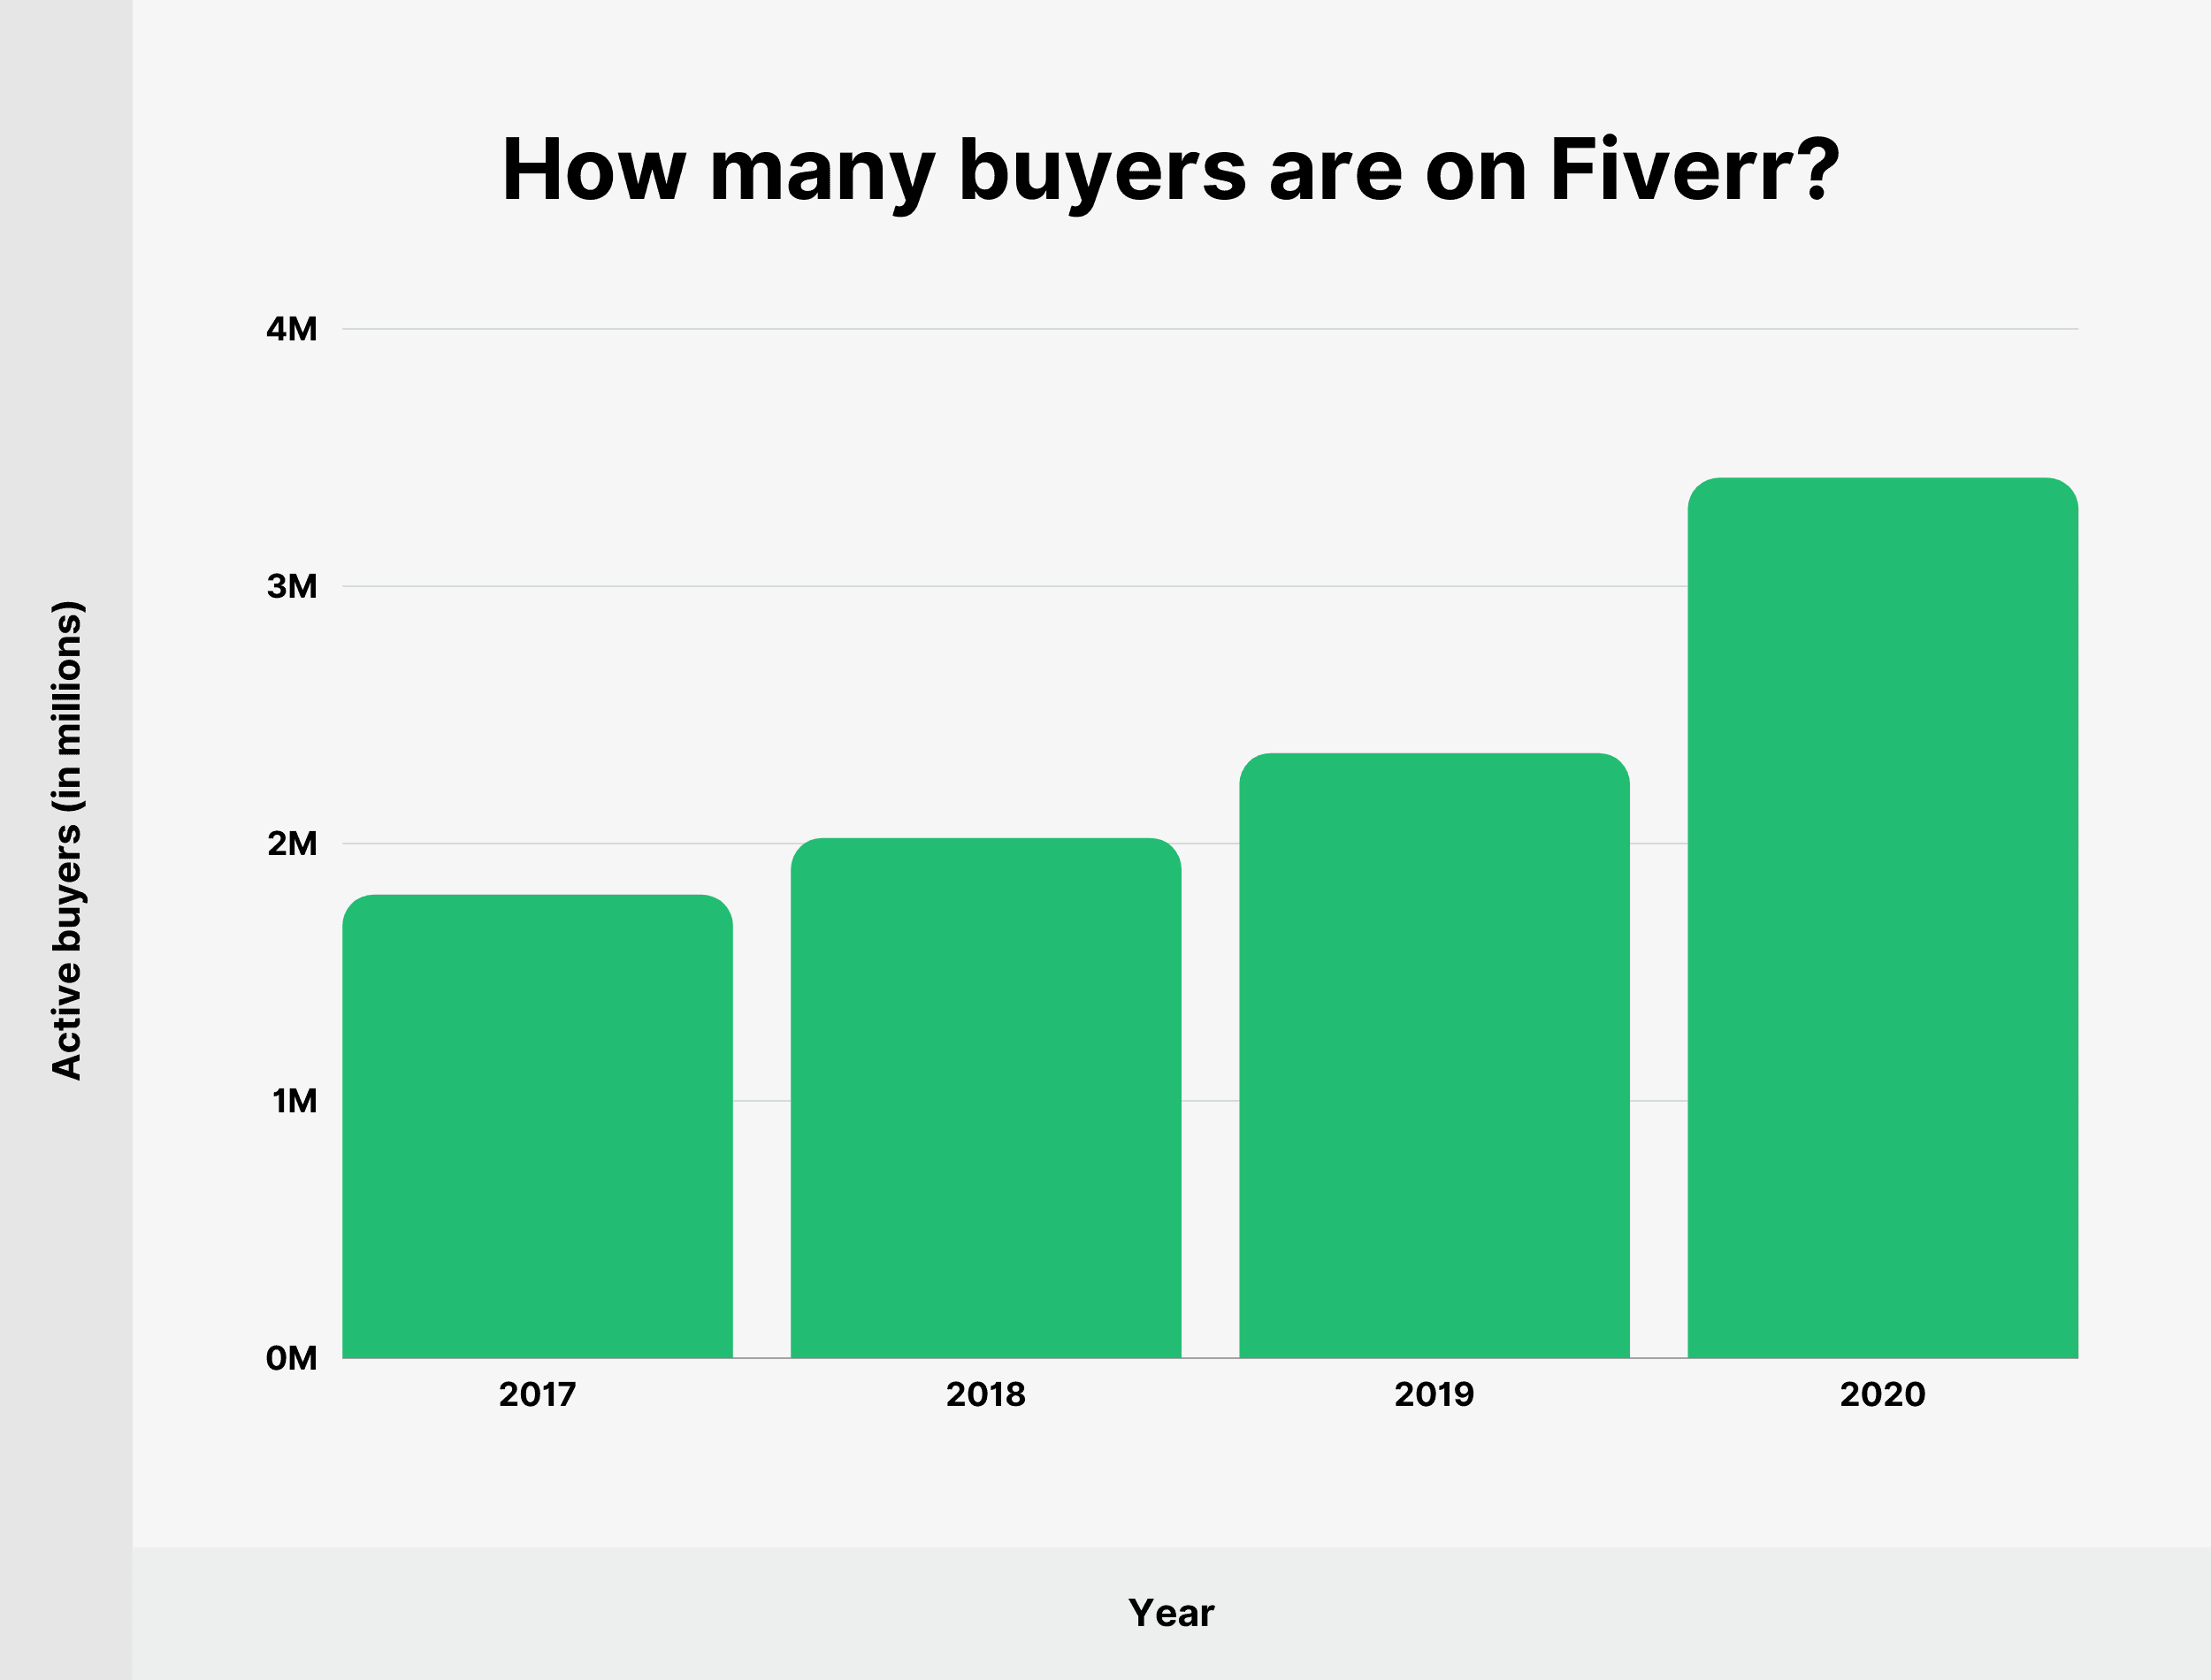 How many buyers are on Fiverr?